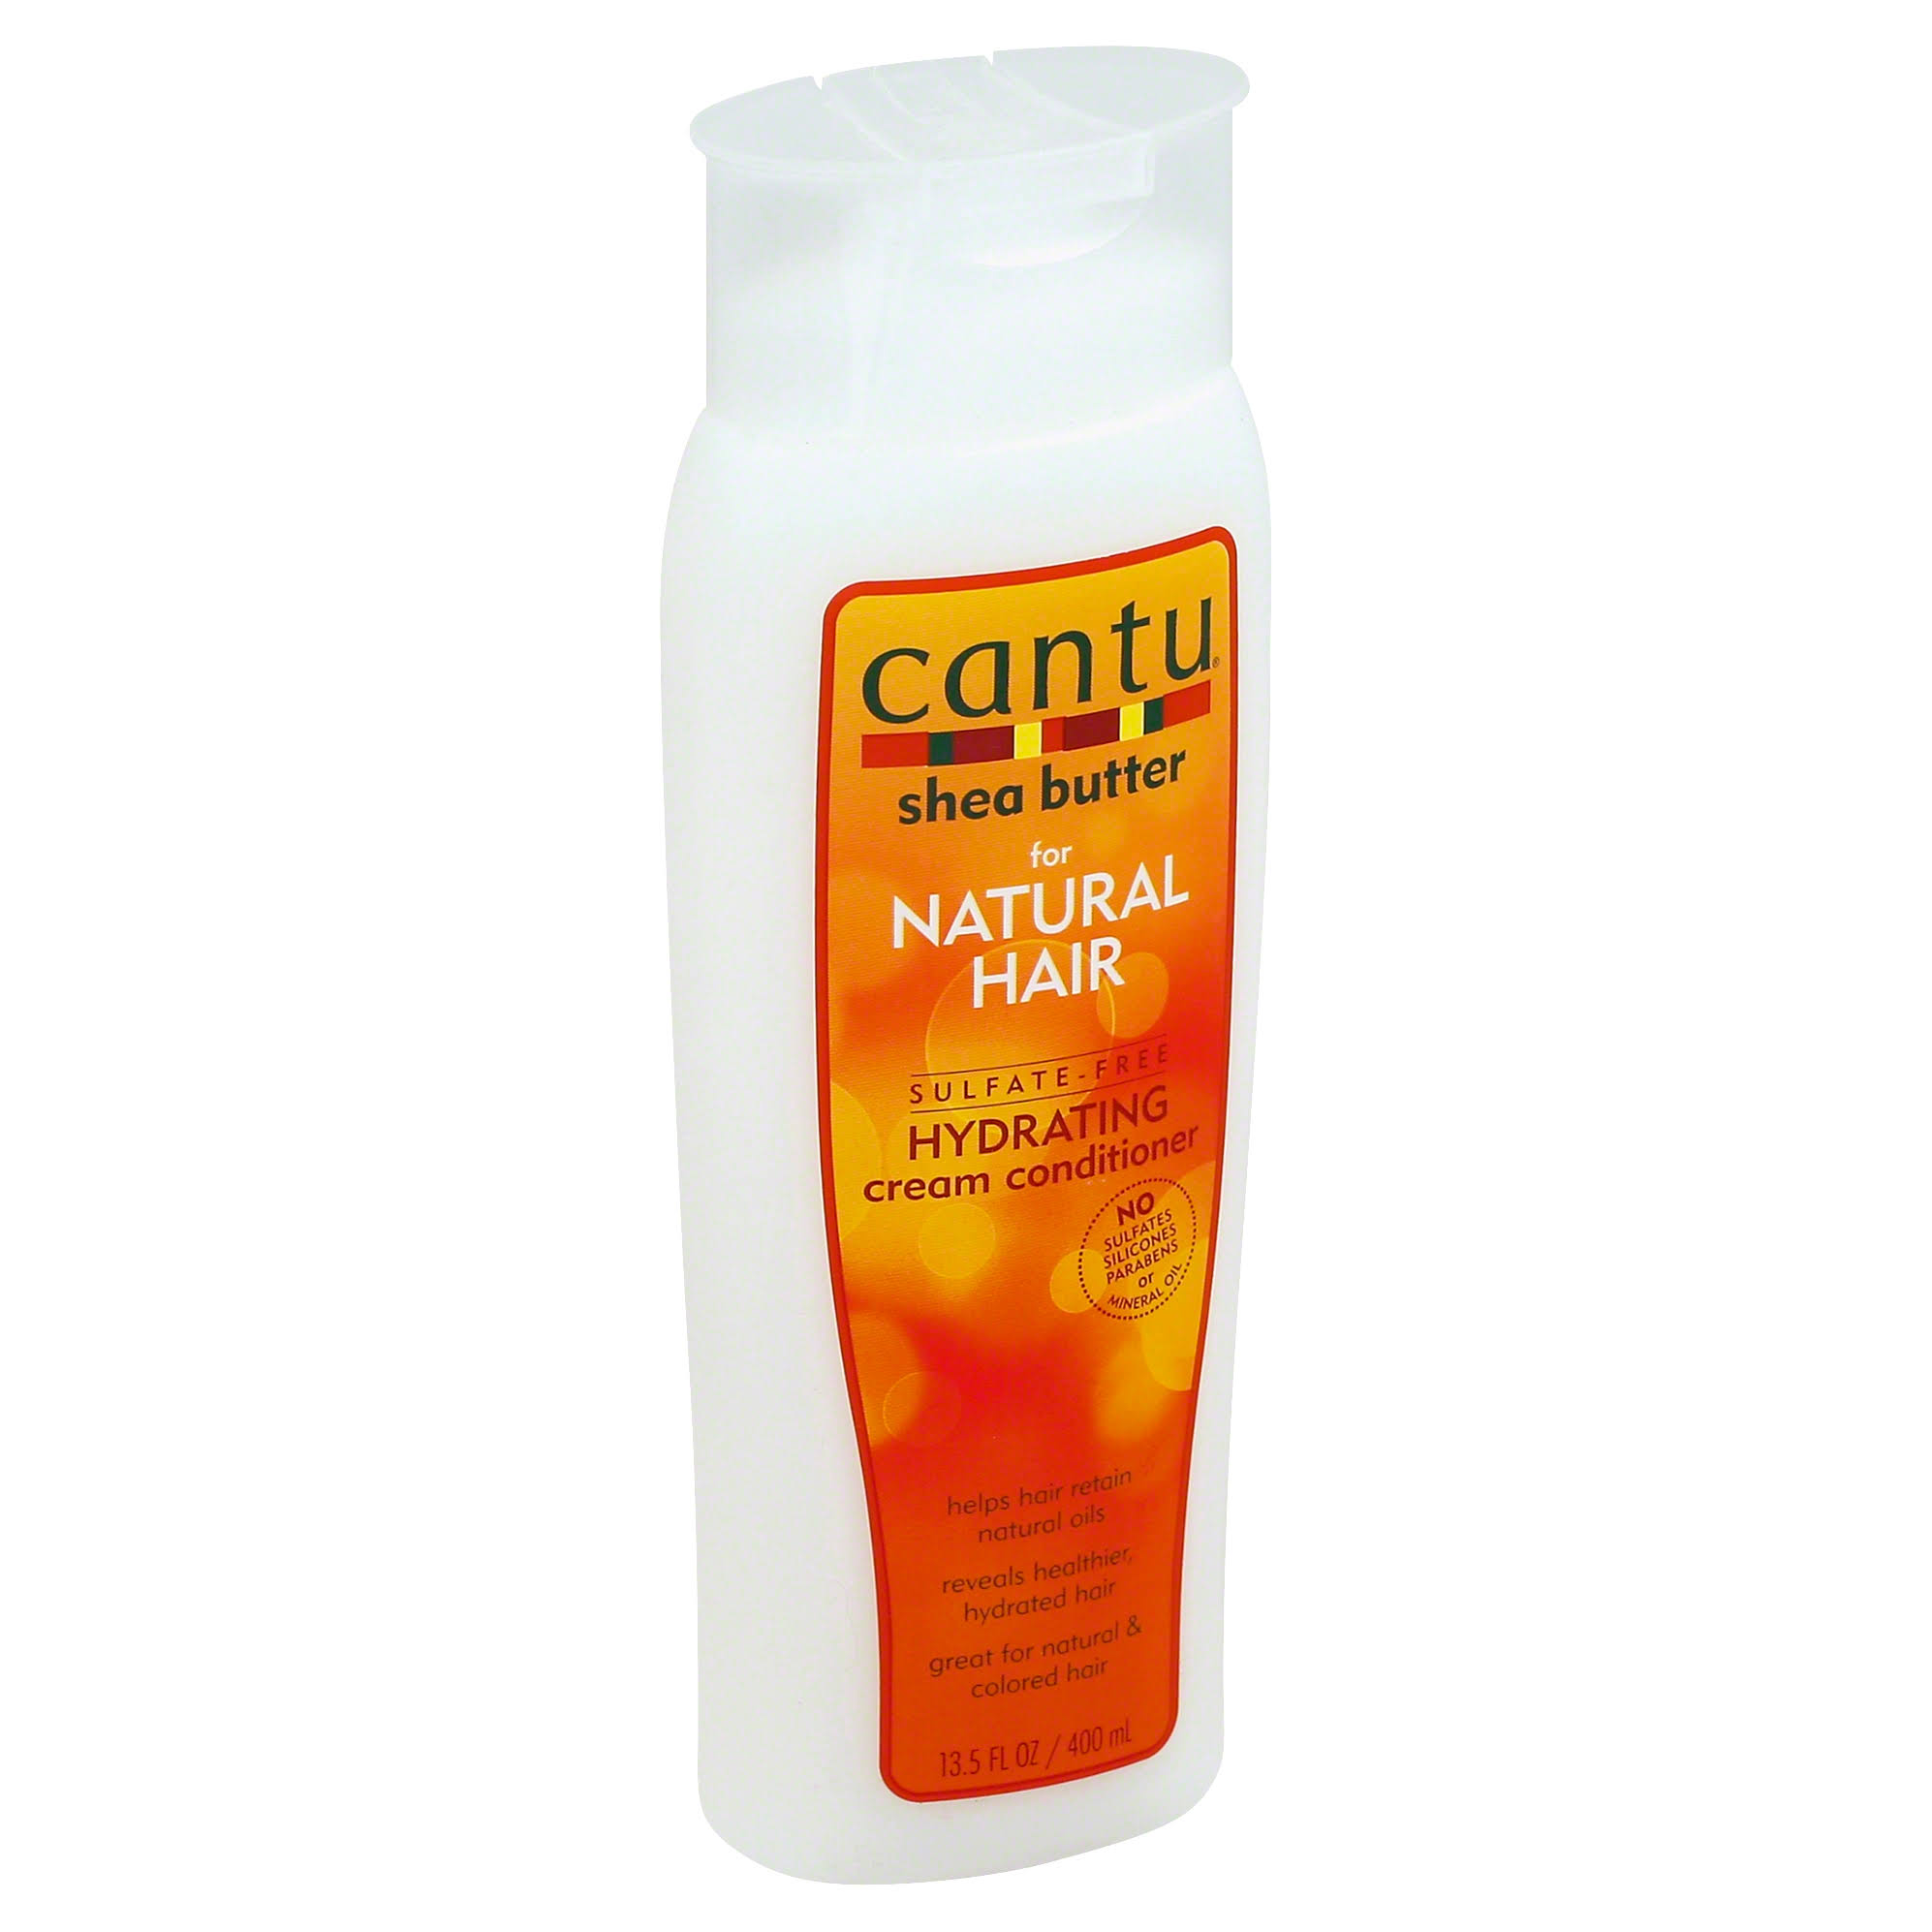 Cantu Shea Butter Sulfate-Free Hydrating Cream Conditioner - 400ml